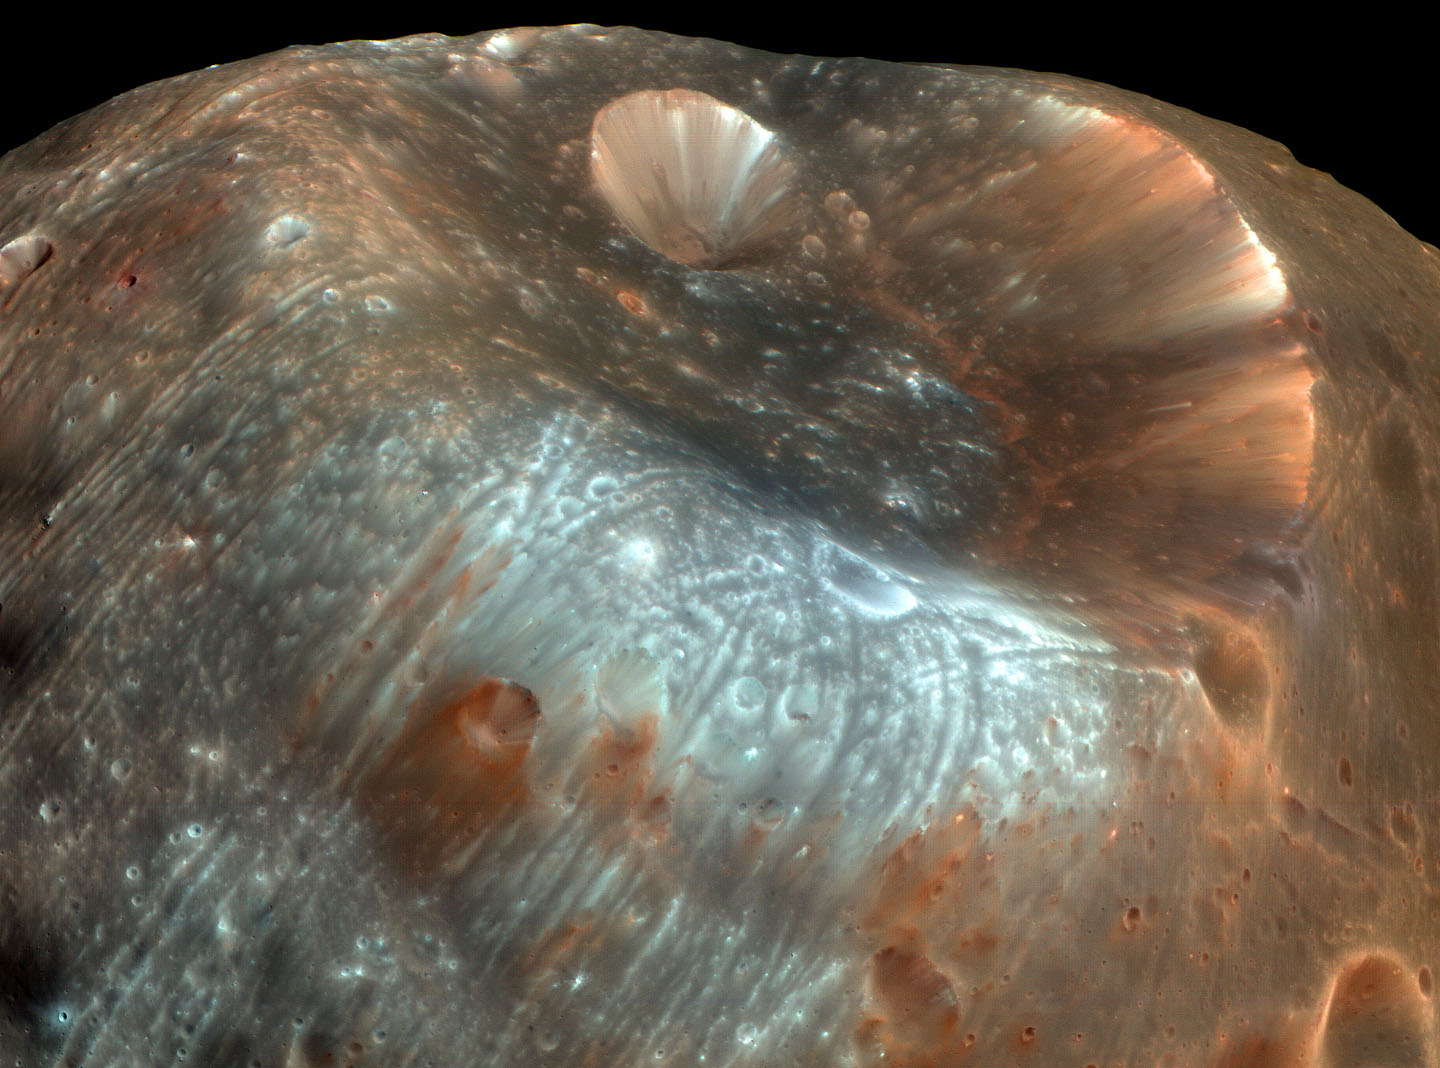 phobos from mars surface - photo #27